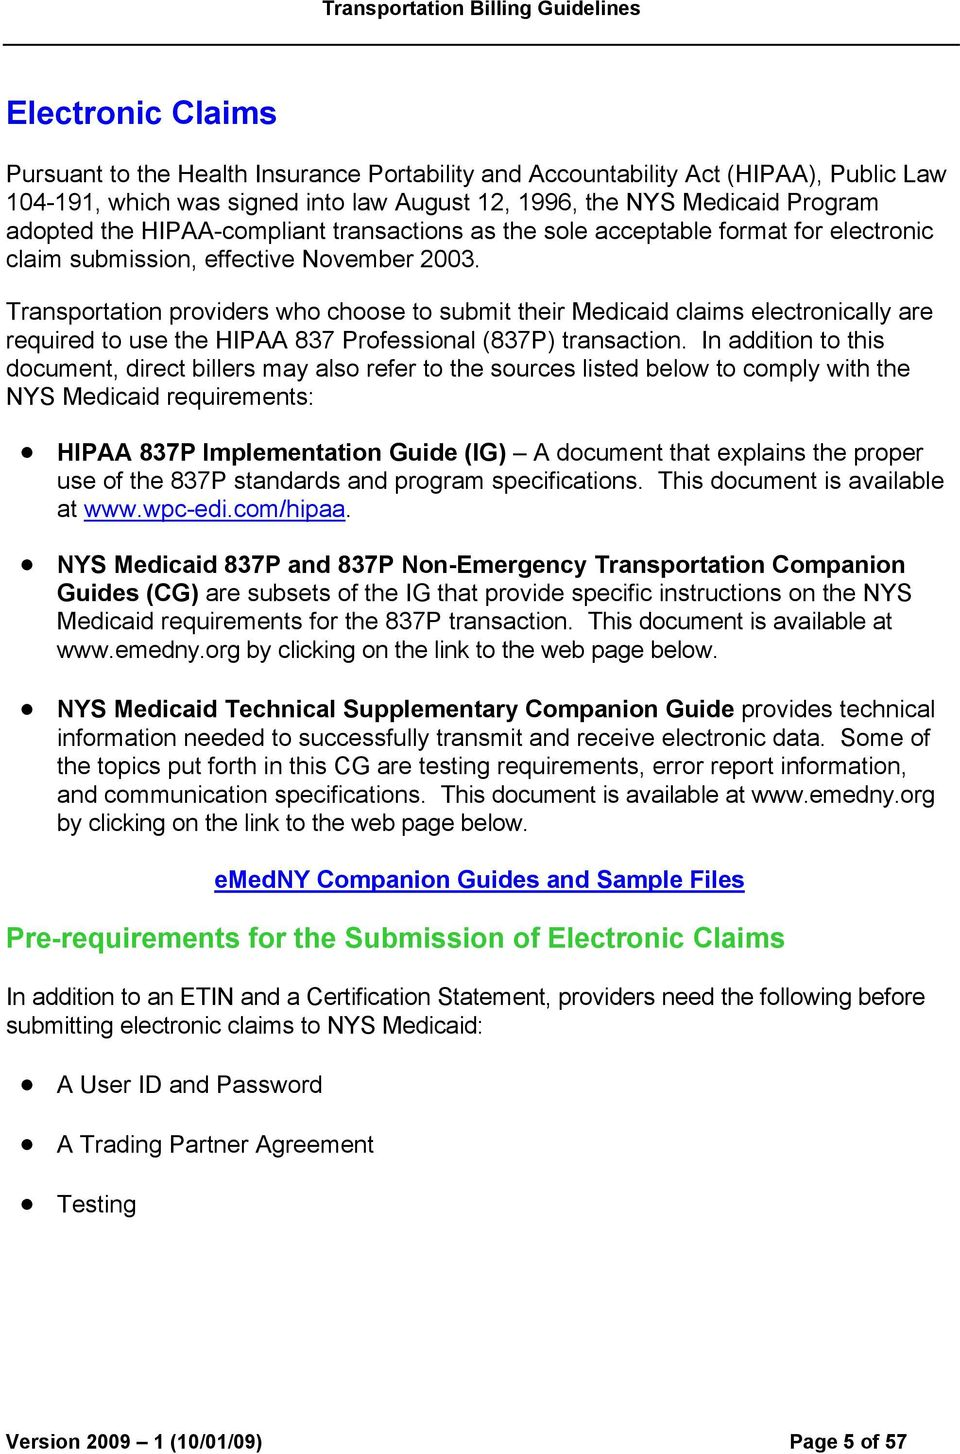 Transportation providers who choose to submit their Medicaid claims electronically are required to use the HIPAA 837 Professional (837P) transaction.